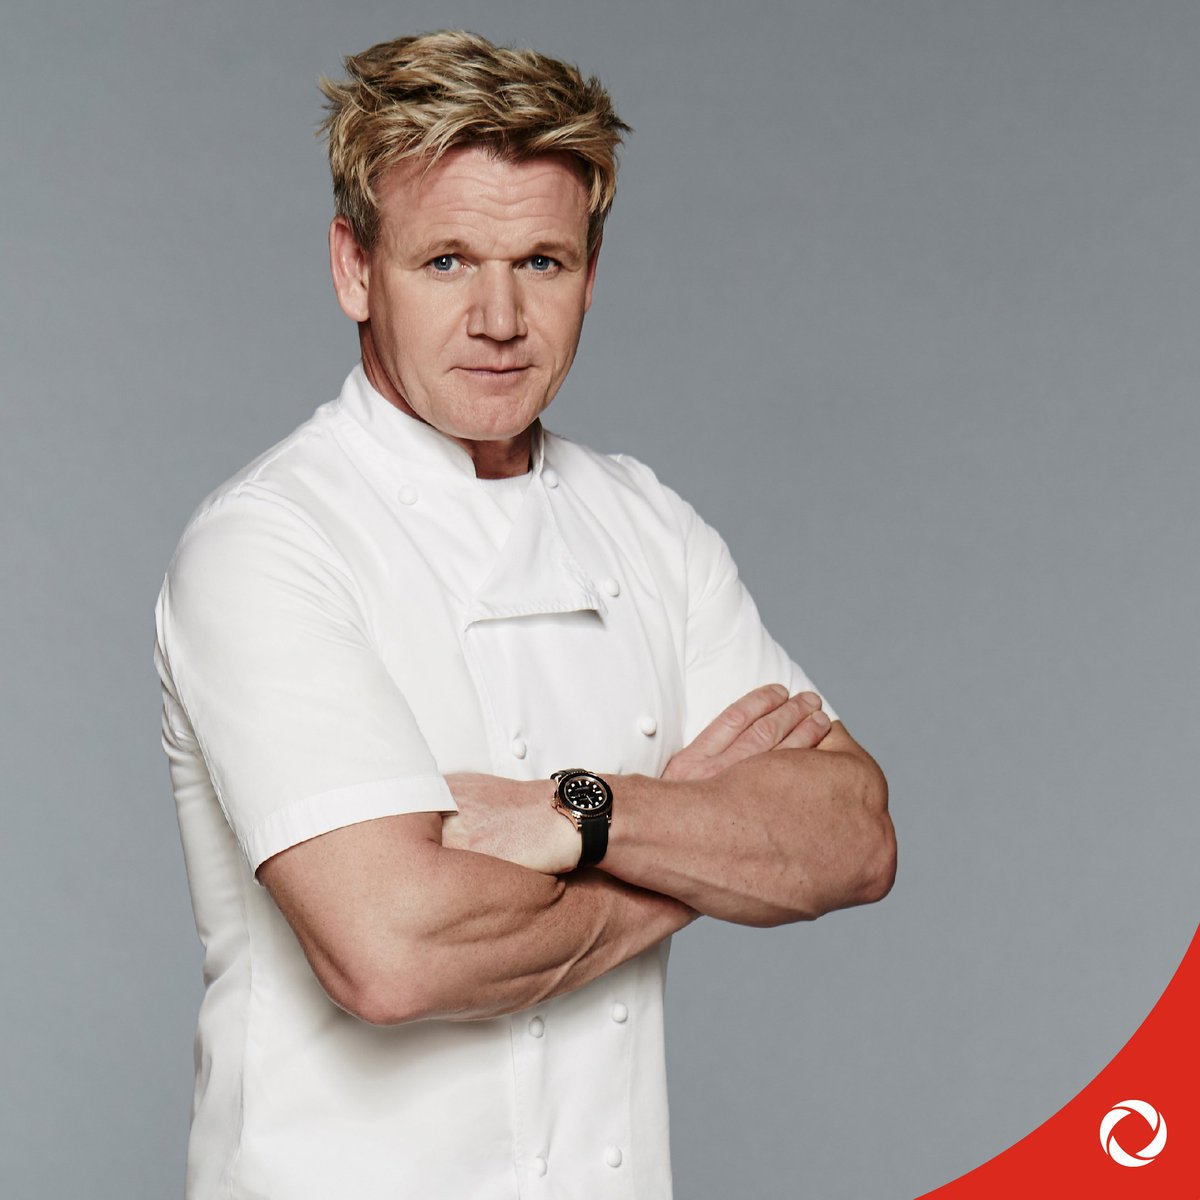 Rogers on twitter dying to meet gordonramsay youre in luck rogers on twitter dying to meet gordonramsay youre in luck come to the toronto eaton centre rogers store this friday oct 5 from 1130 to 1pm for a m4hsunfo